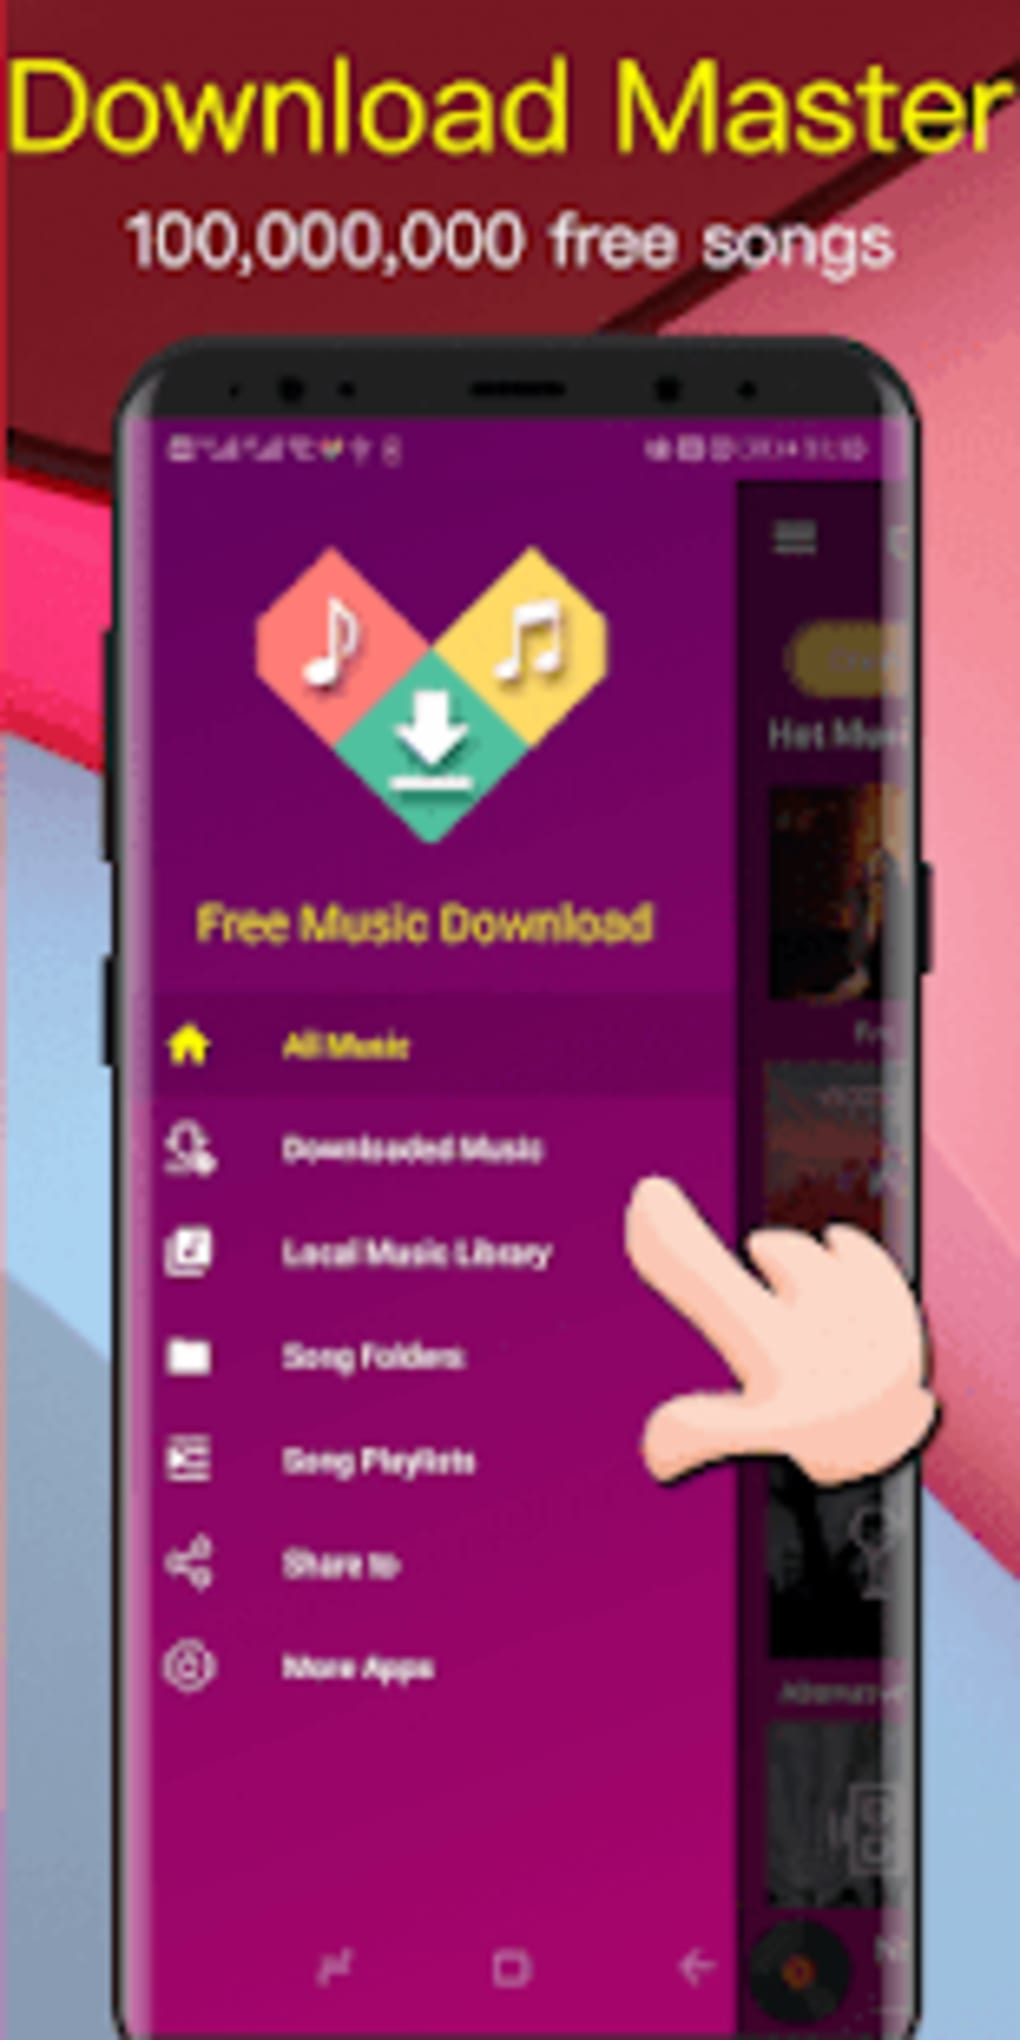 Free Music Download - Unlimited Mp3 Songs Offline for Android - Download